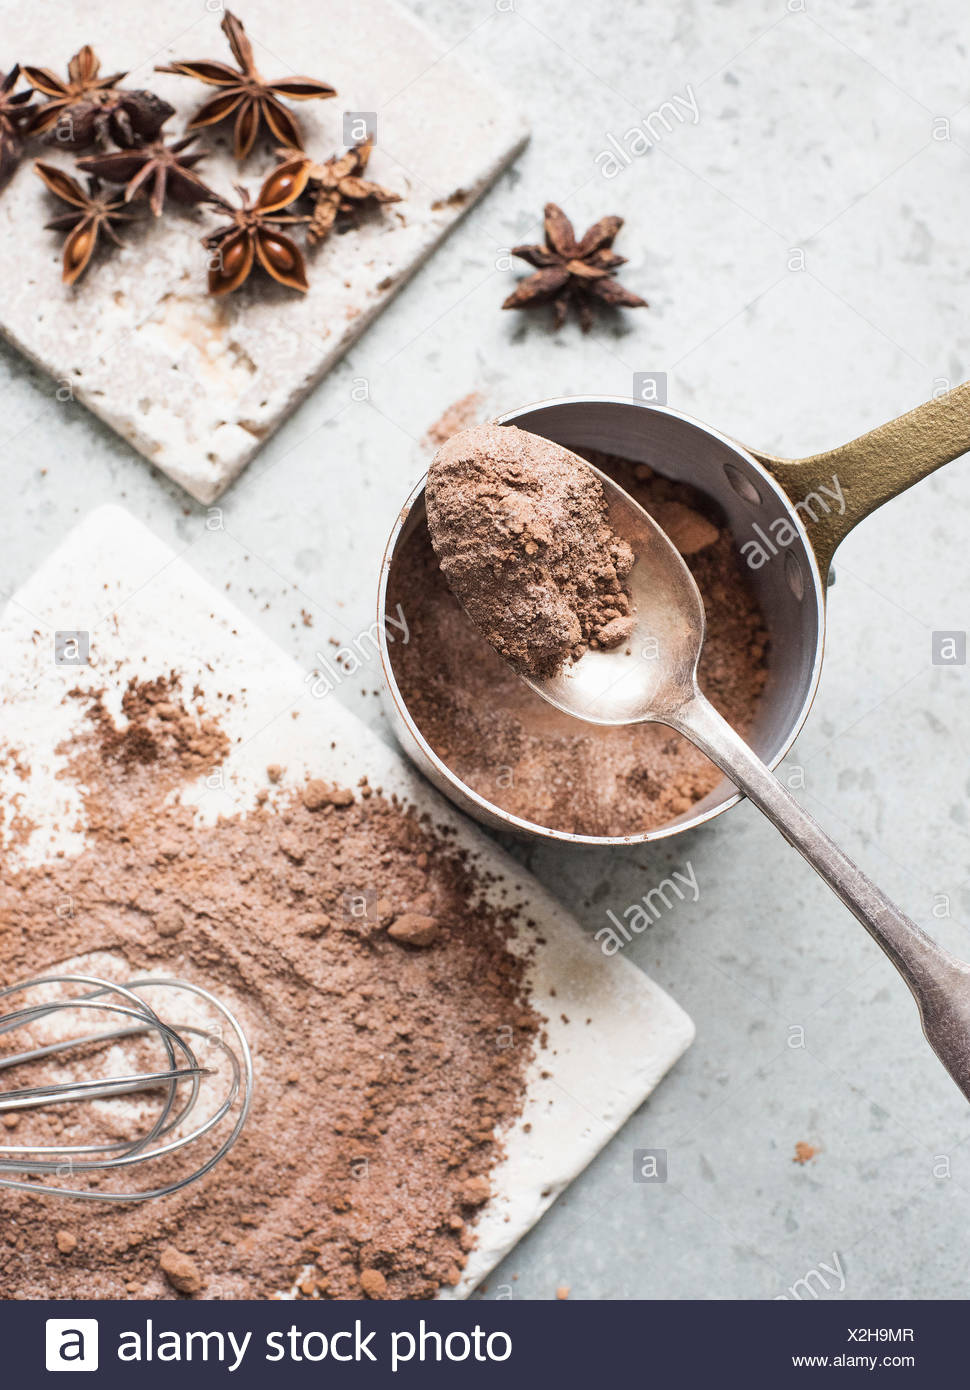 Cocoa powder mixed with sugar with star anise - Stock Image